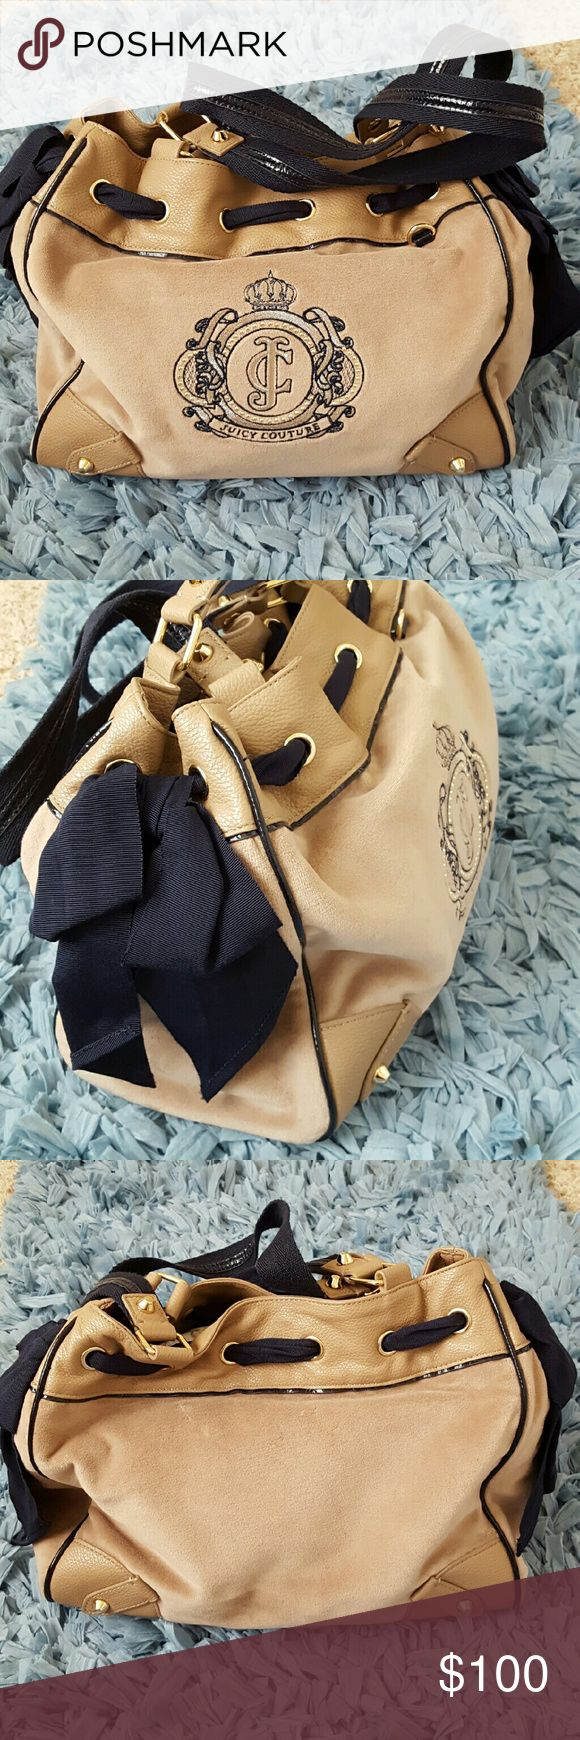 """Juicy Couture Shoulder Bag This bag features a taupe brown body with the Juicy Couture crest, navy blue trims, bows and fabric handles, gold tone hardware, 2 exterior side slip pockets, magnetic closure, interior zipper pocket and 2 media pockets. Pre-loved and in great condition with little signs of wear. Handle drop approximately 9.5"""". Dimensions are approximately 11"""" x 13"""" x 6.5"""" Juicy Couture Bags Shoulder Bags"""